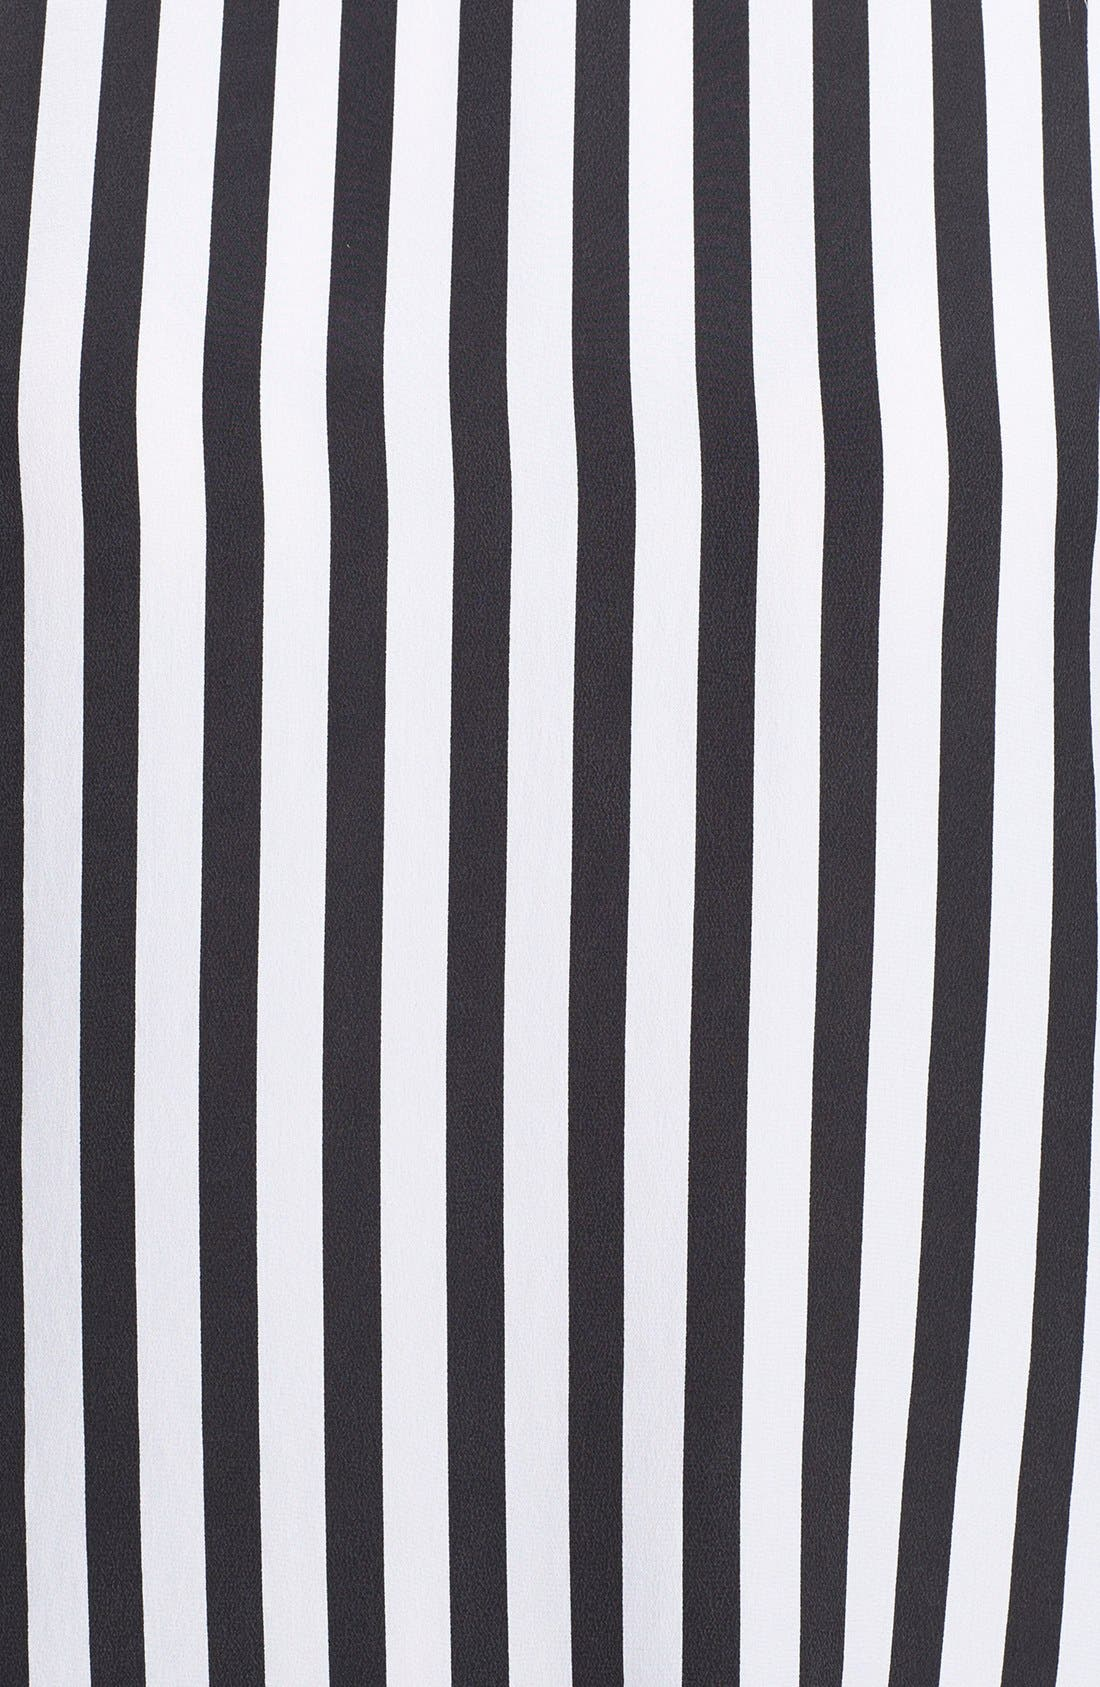 Alternate Image 3  - Equipment 'Elliot' Stripe Silk Top